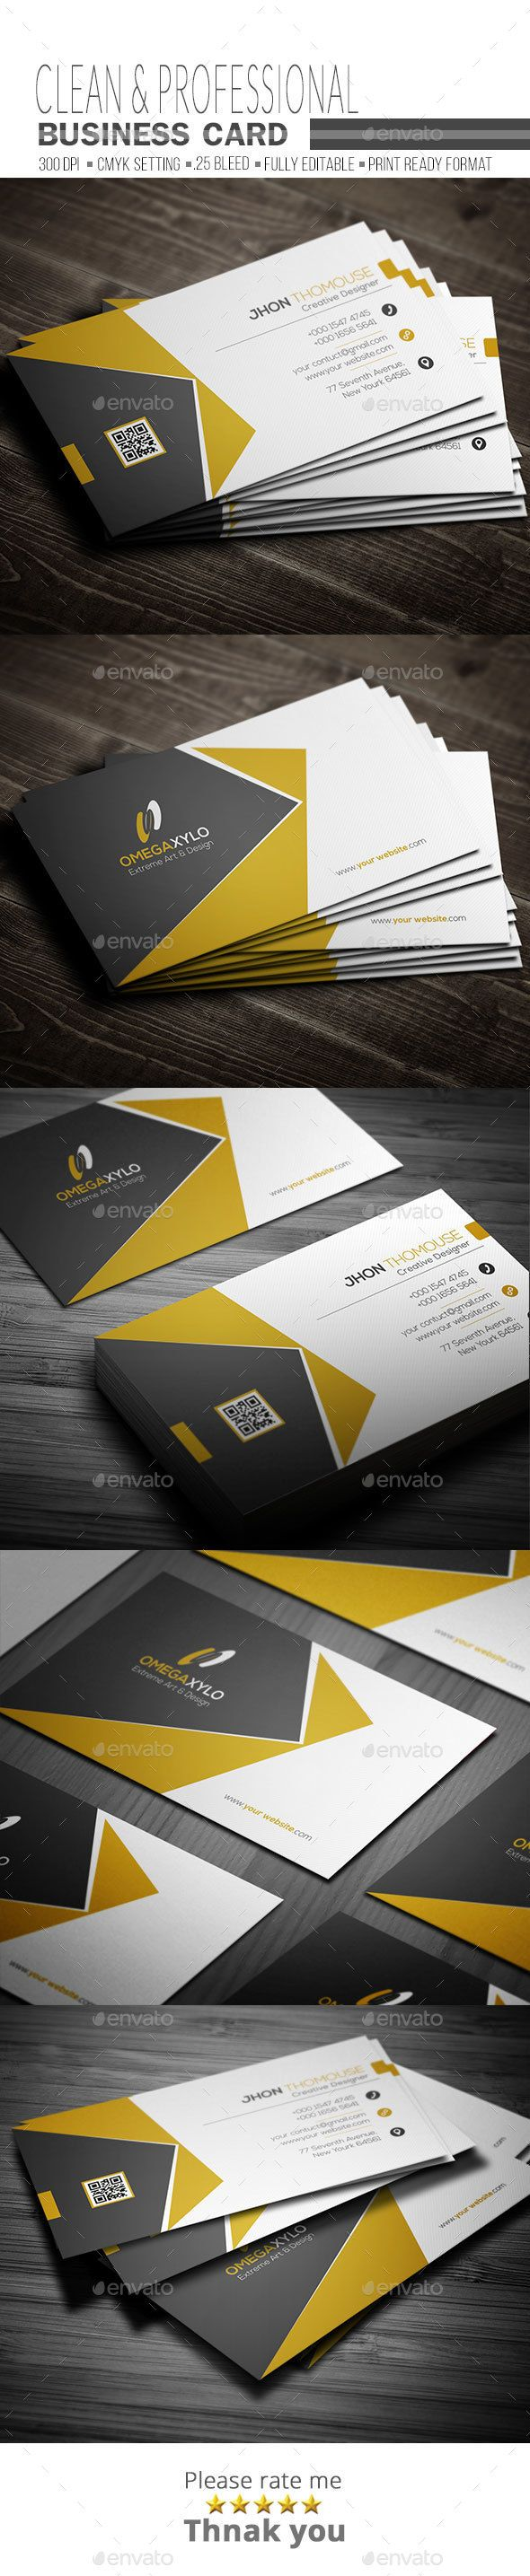 Corporate Business Card,black, brand, business, business card, card, clean, cmyk, color, company, corporate, creative, design, designer, golden, horizontal, modern, personal, print, print ready, professional, psd, simple template elegant, sleek, style, stylish, white, yellow